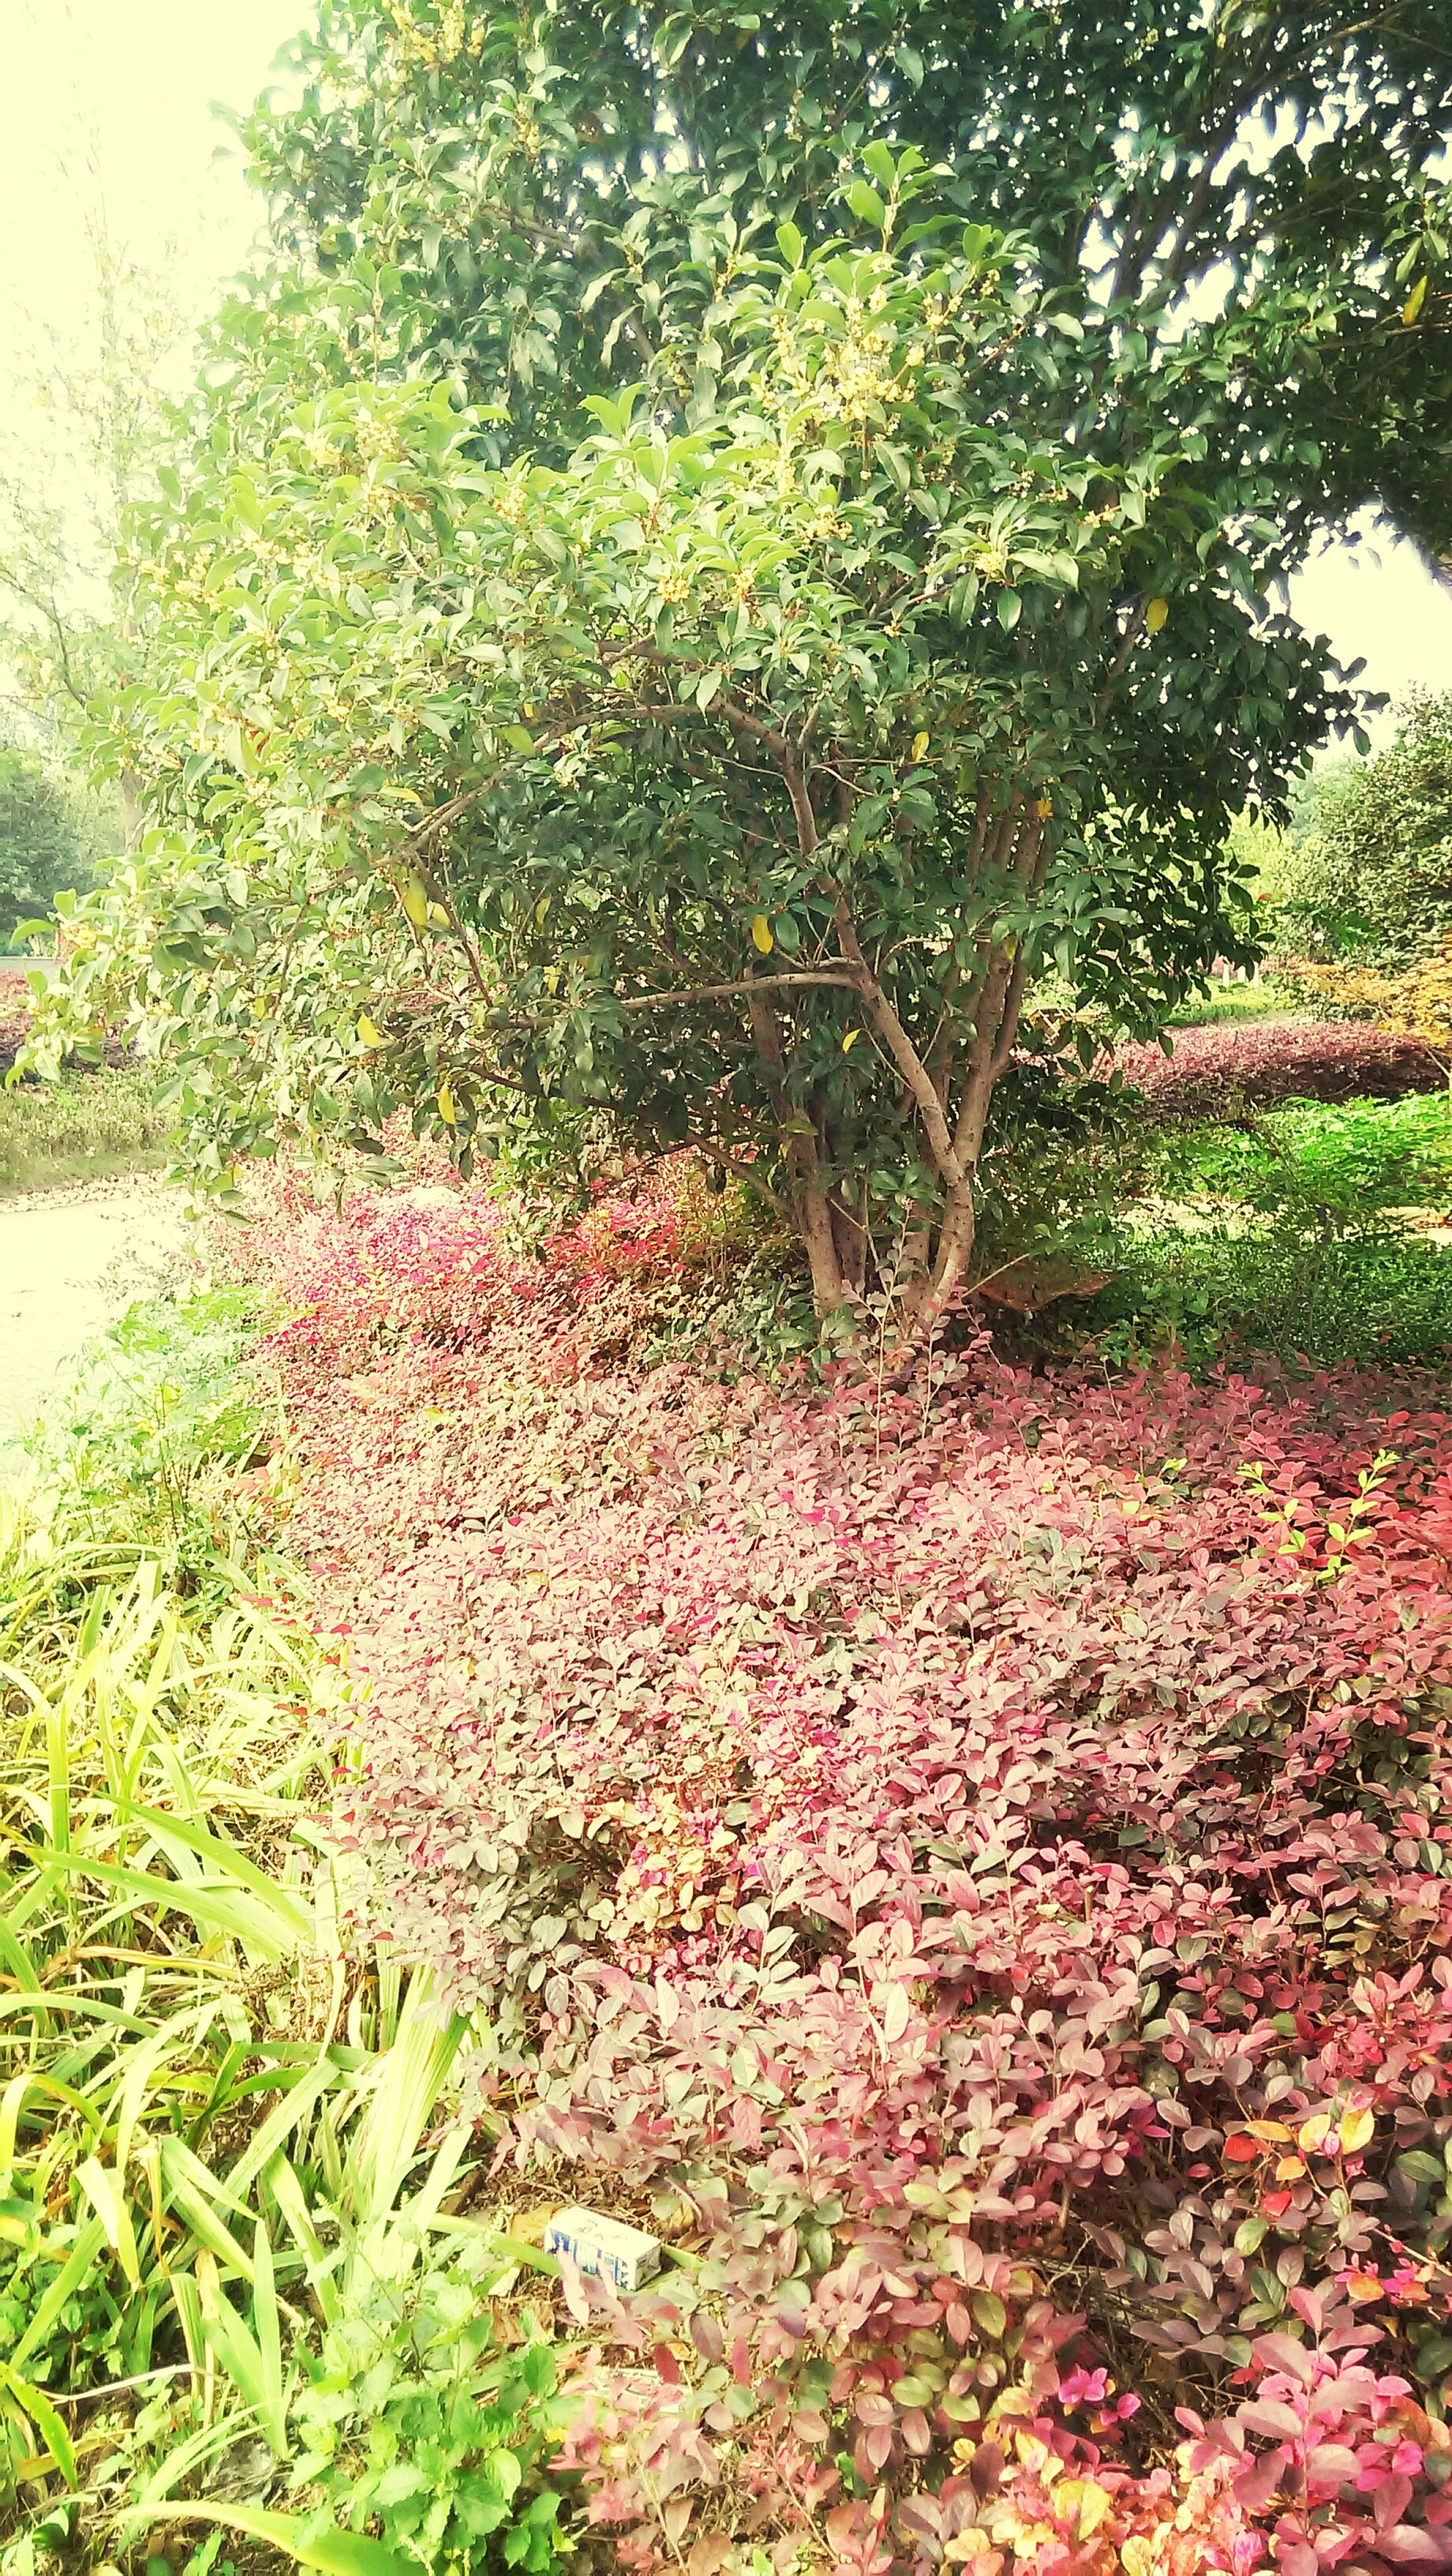 growth, plant, flower, tree, nature, green color, beauty in nature, leaf, tranquility, grass, red, freshness, growing, day, outdoors, bush, no people, park - man made space, field, lush foliage